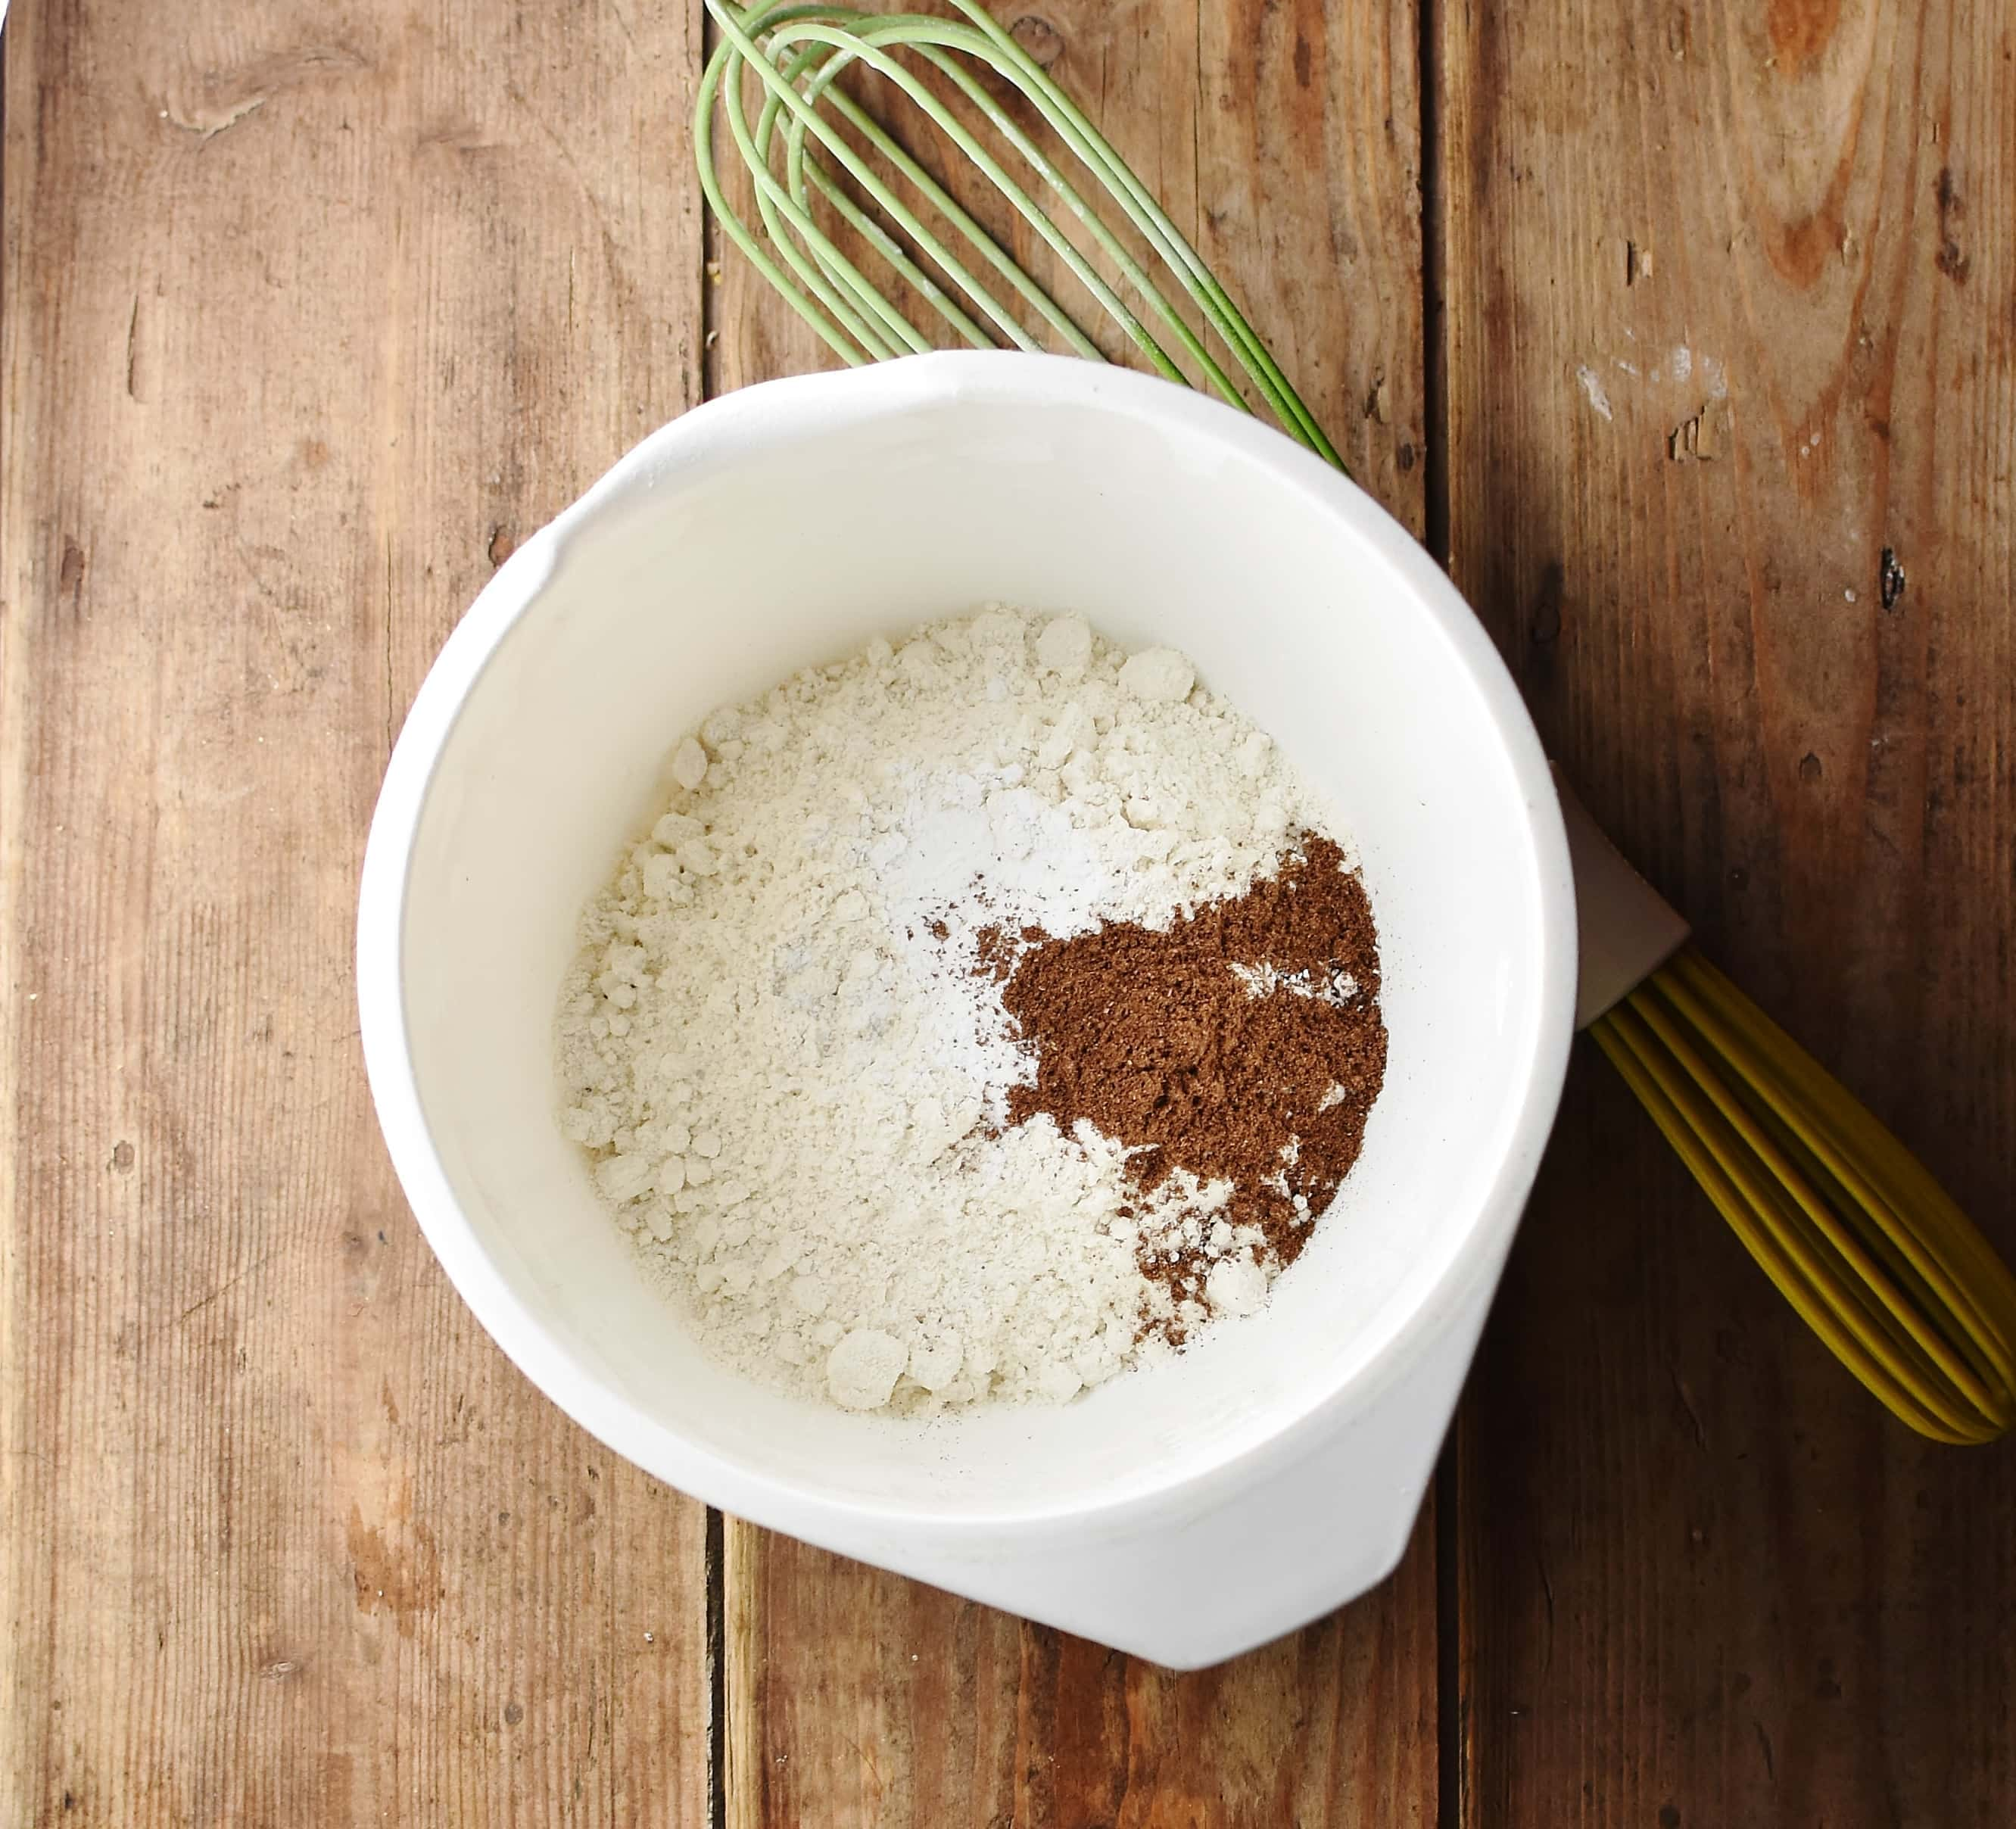 Flour and spices in white bowl with green whisk to the right.